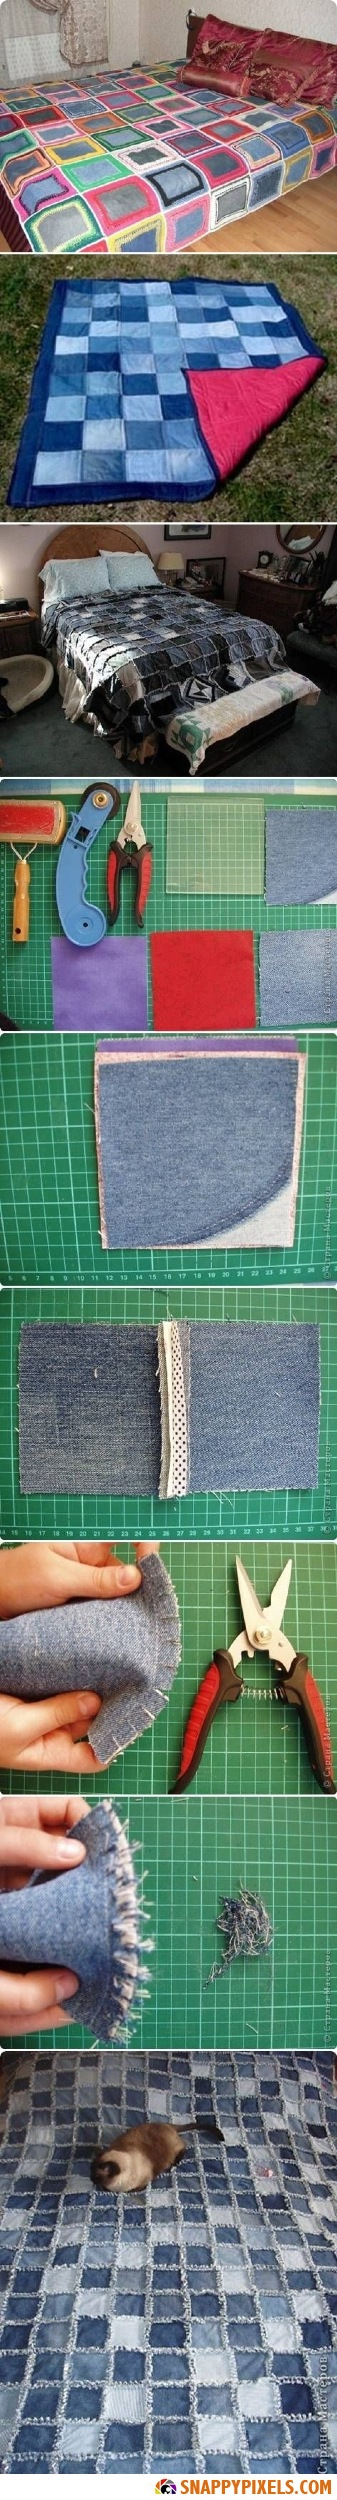 DIY Make a Denim Blanket Instructions